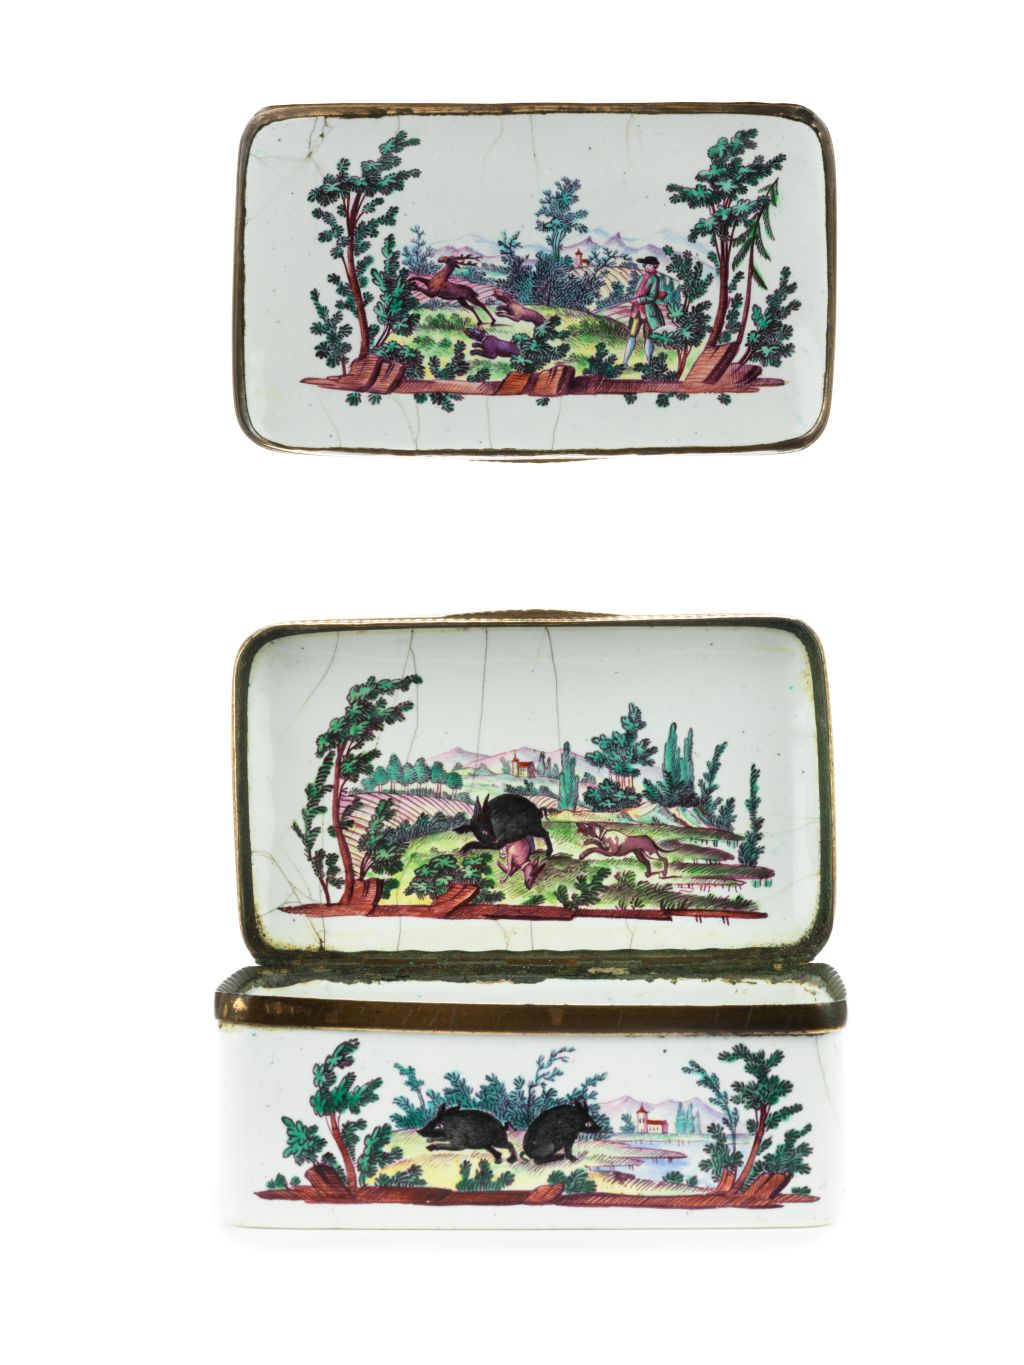 18th century Hunting Snuff Box Joh. Andreas Bechdolff ca. 1770